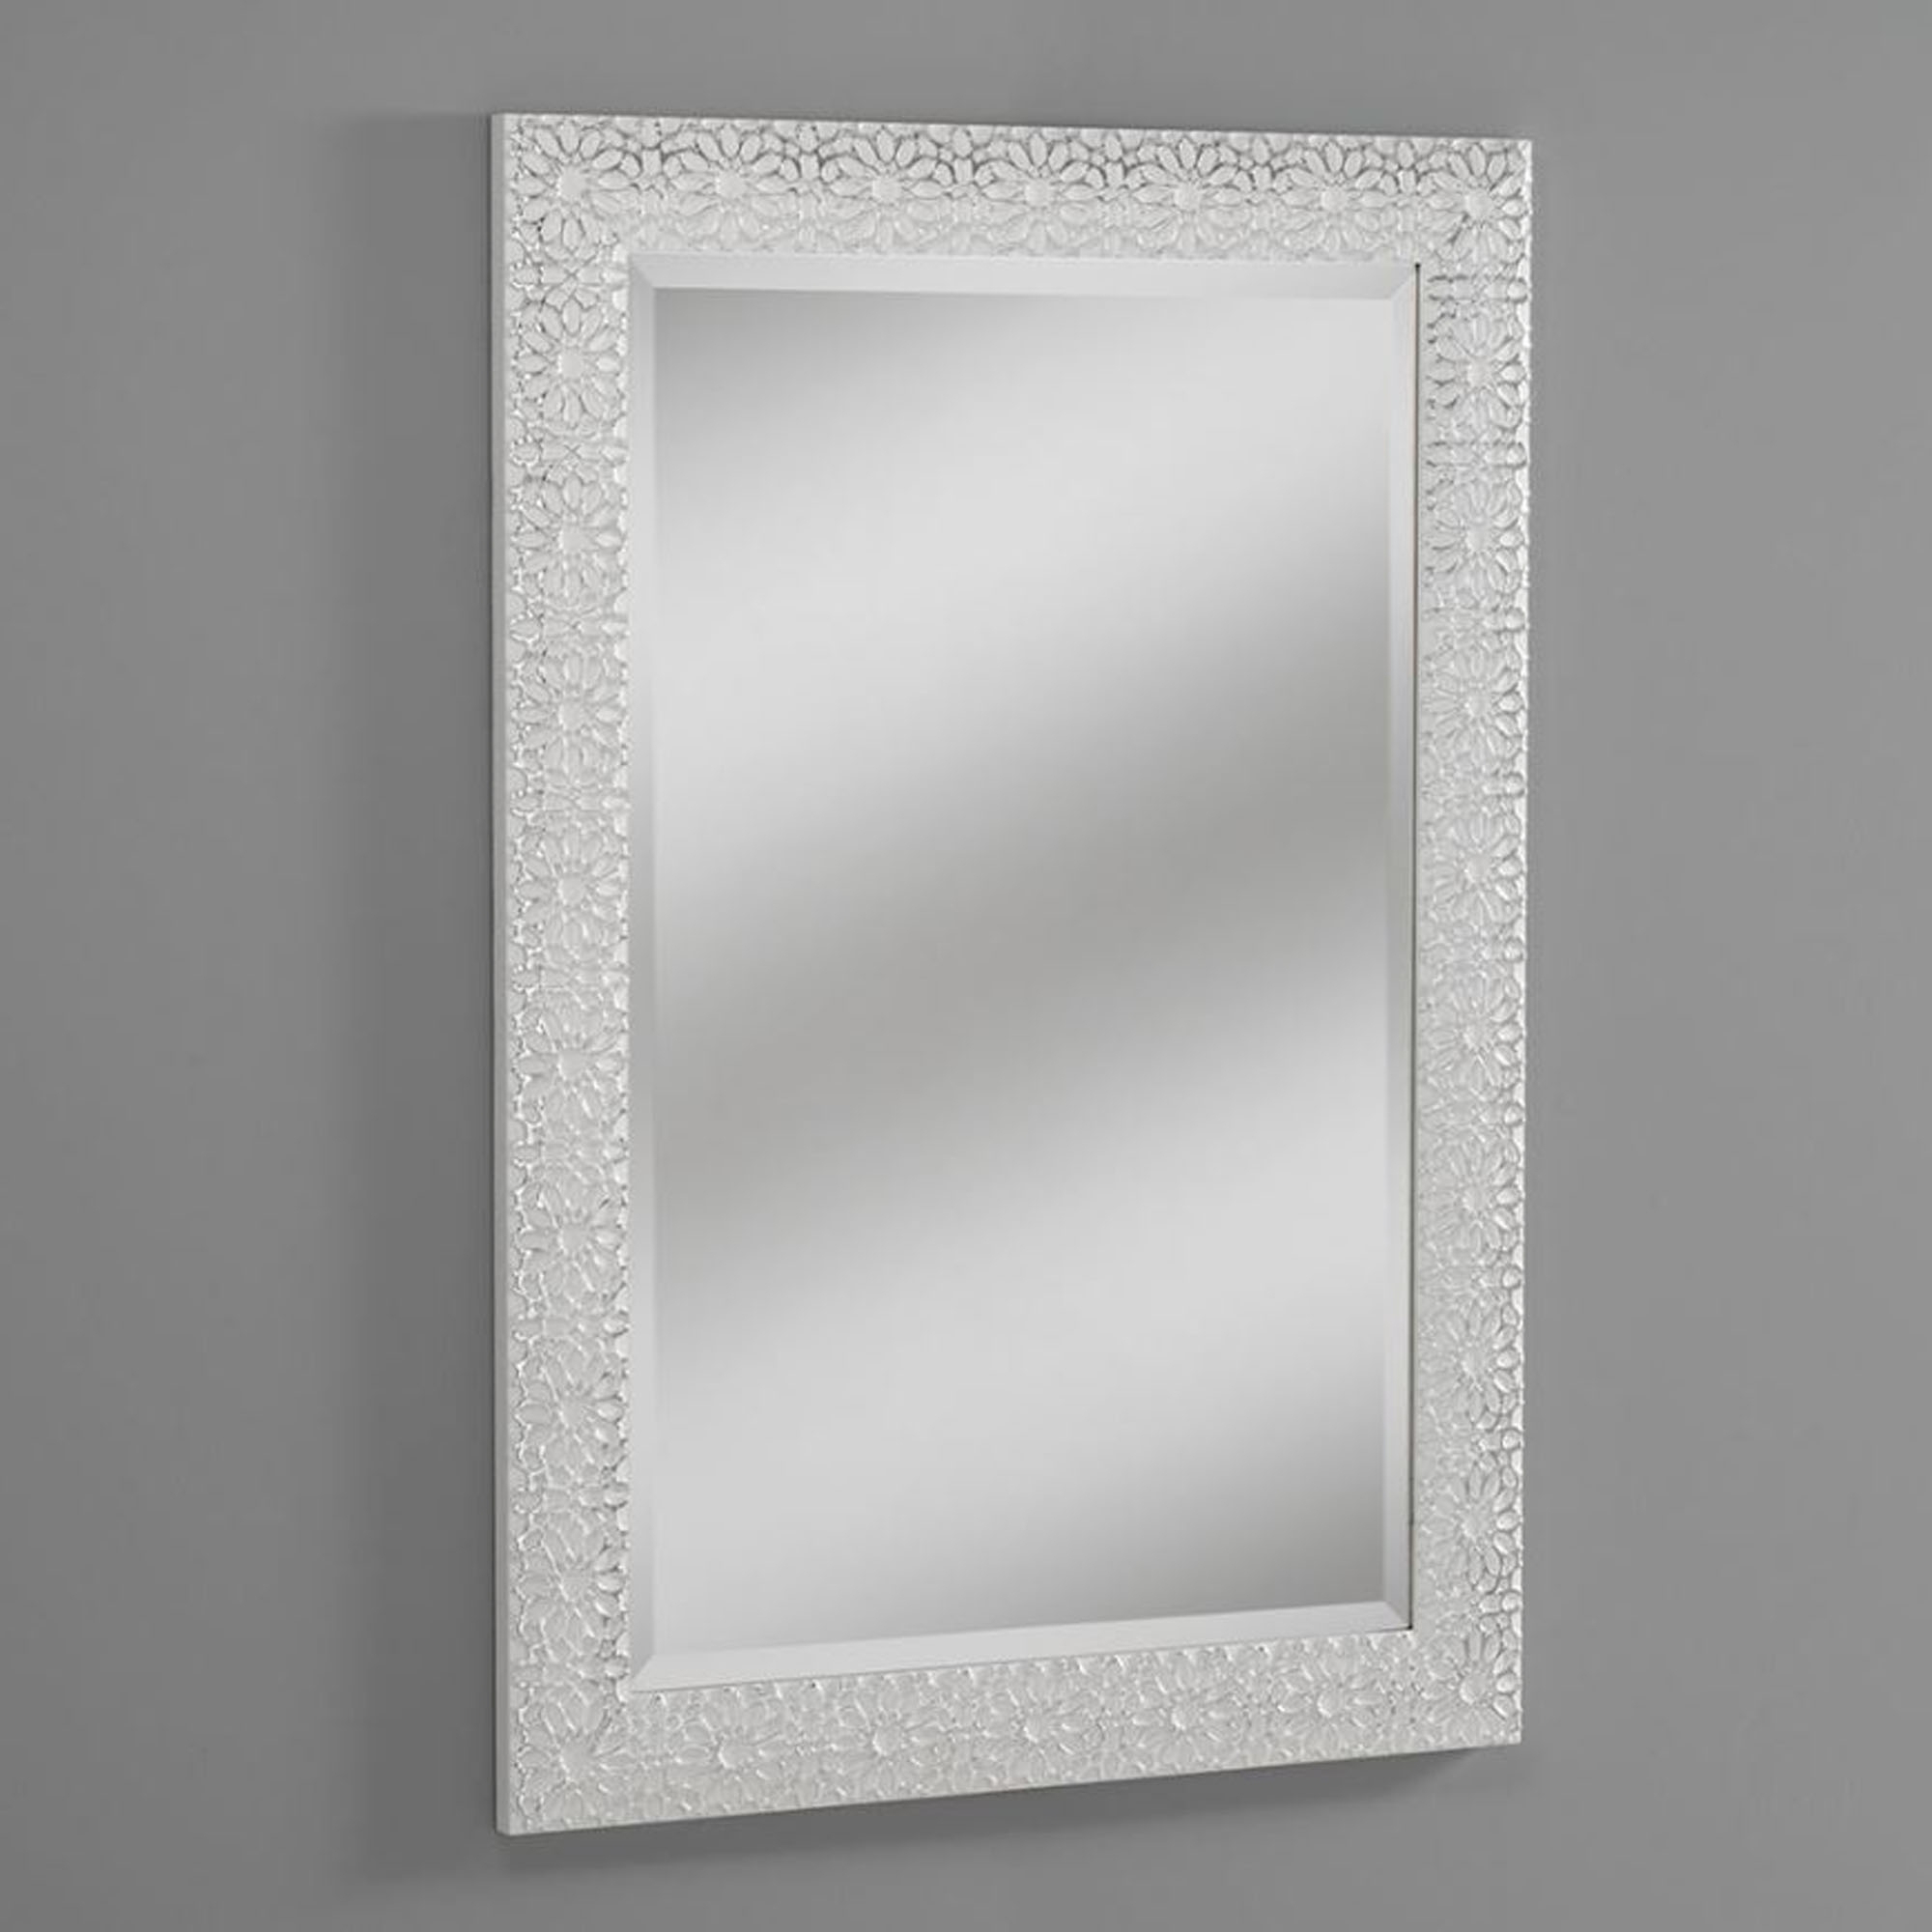 Decorative Wall Mirrors For Favorite Petal White Decorative Wall Mirror (View 7 of 20)